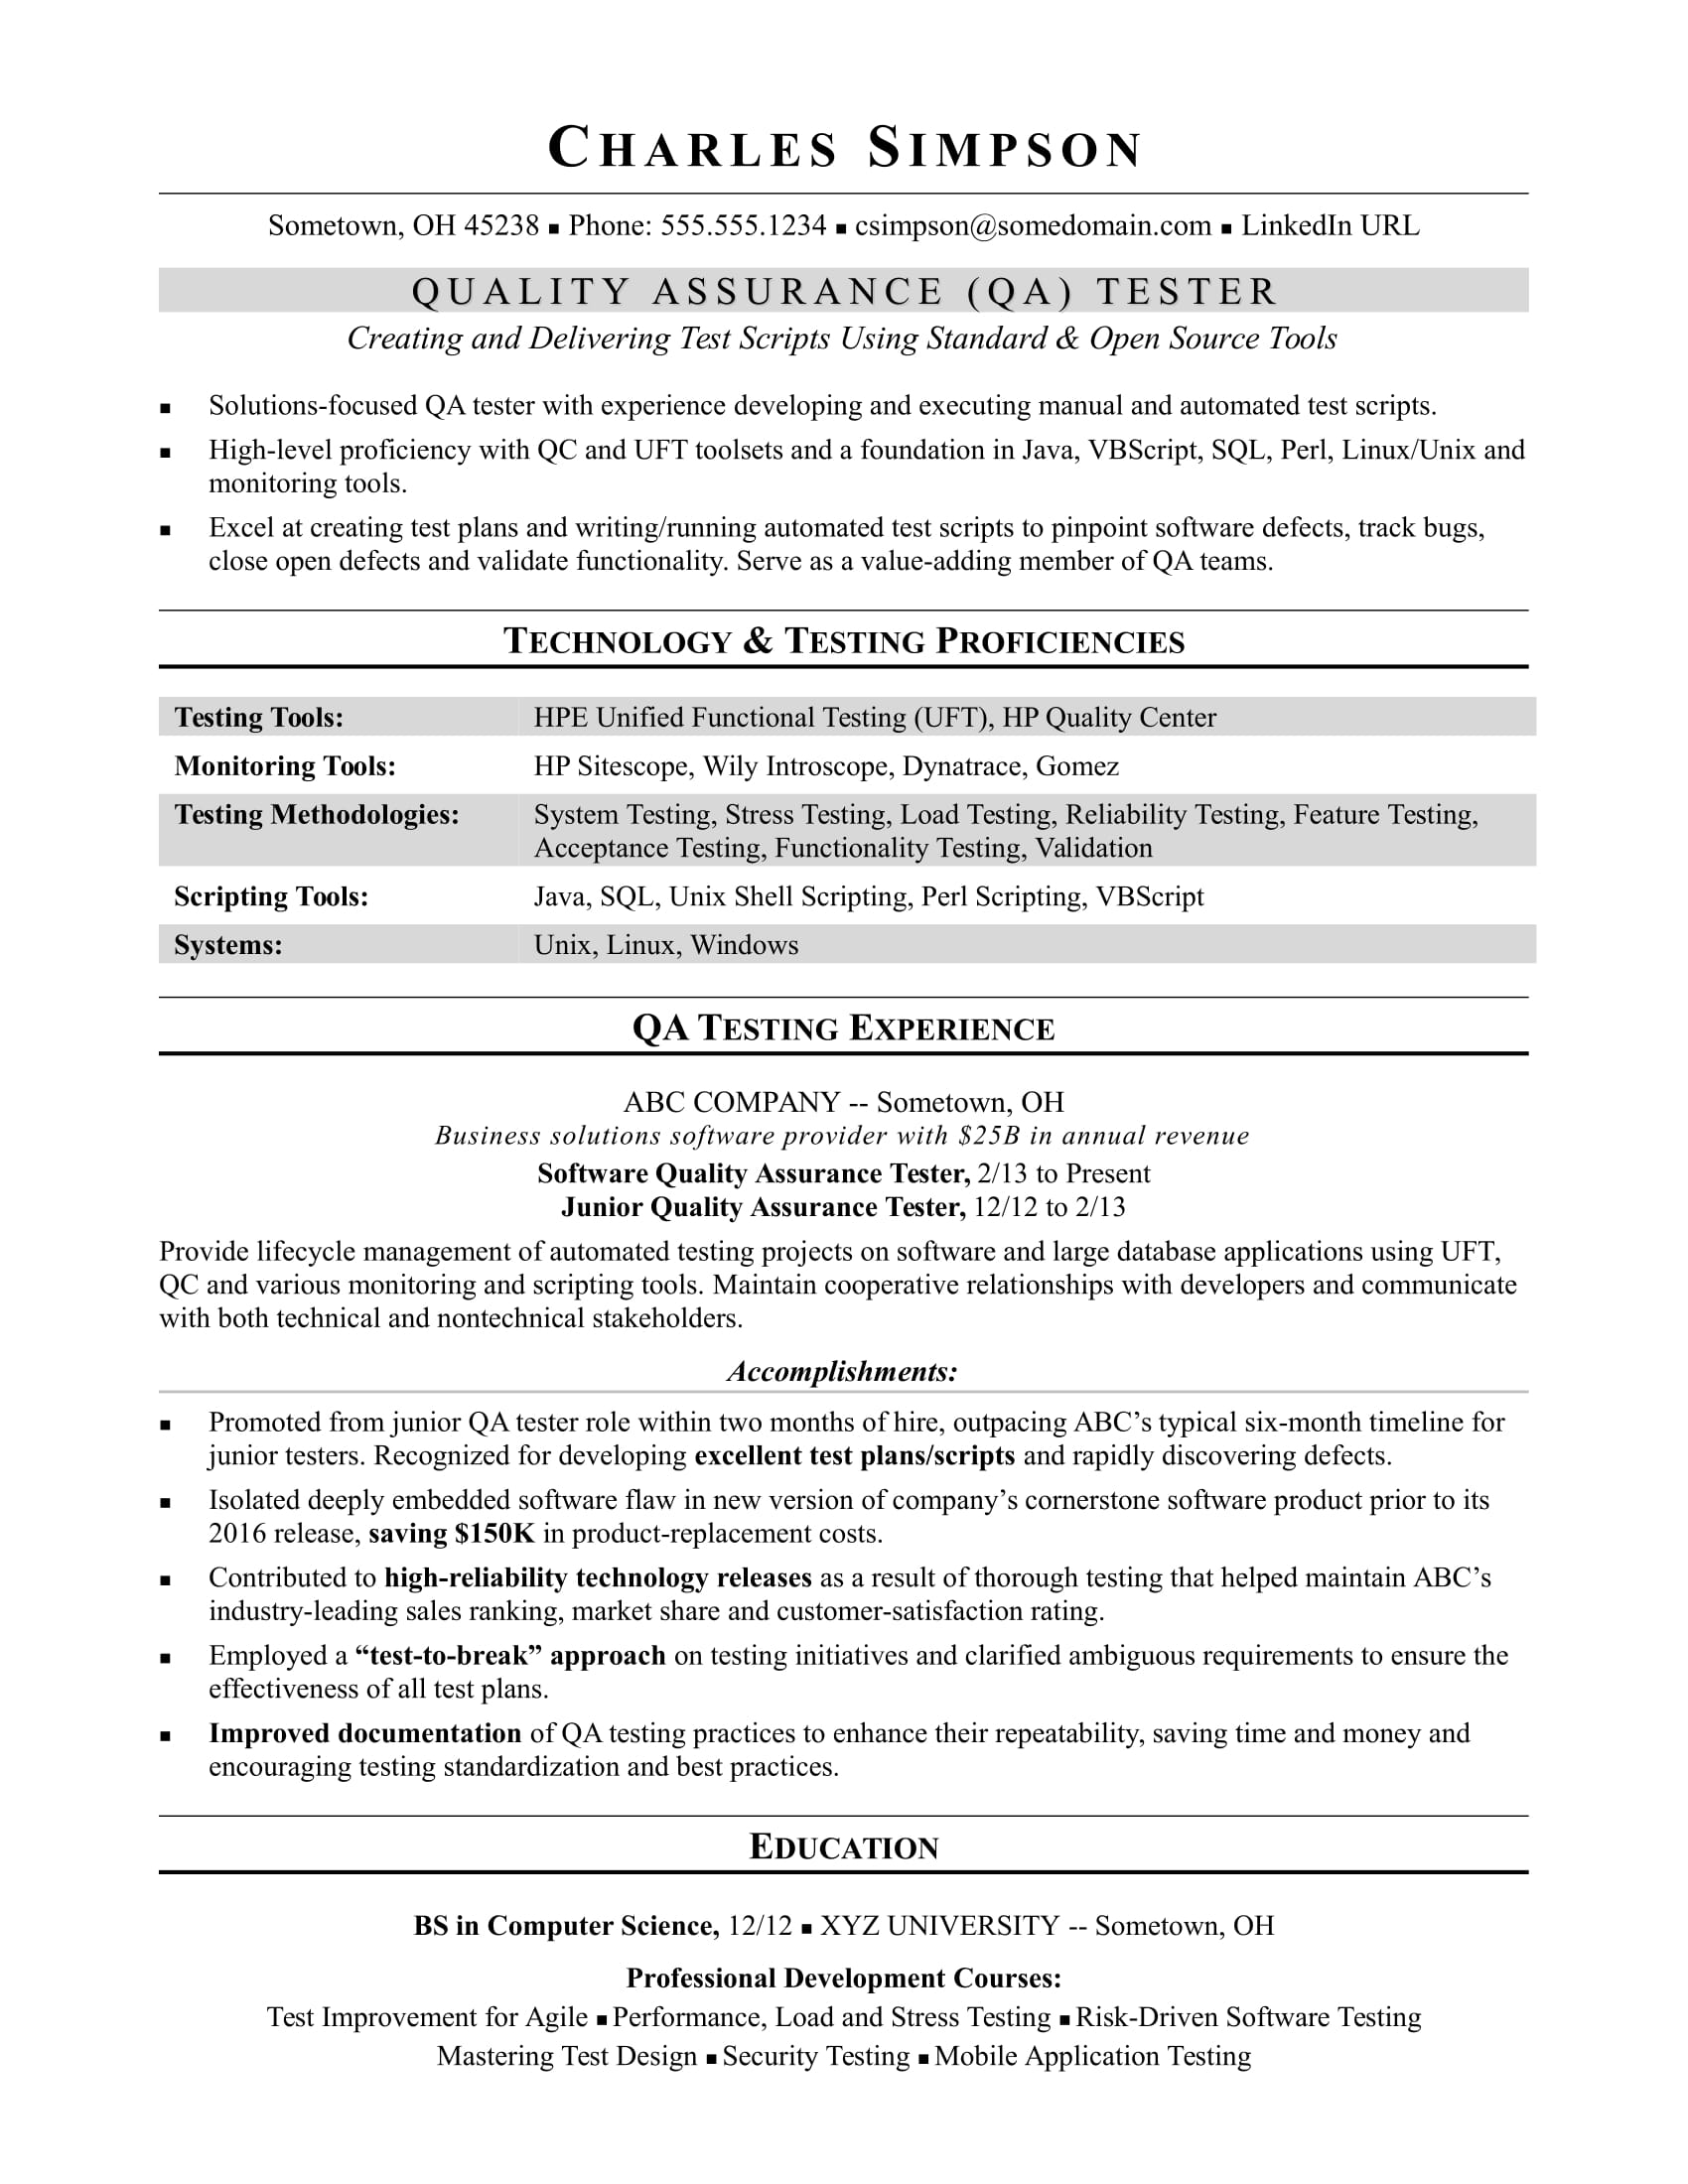 sample resume for midlevel qa software tester monster quality assurance experience purdue Resume Quality Assurance Experience Resume